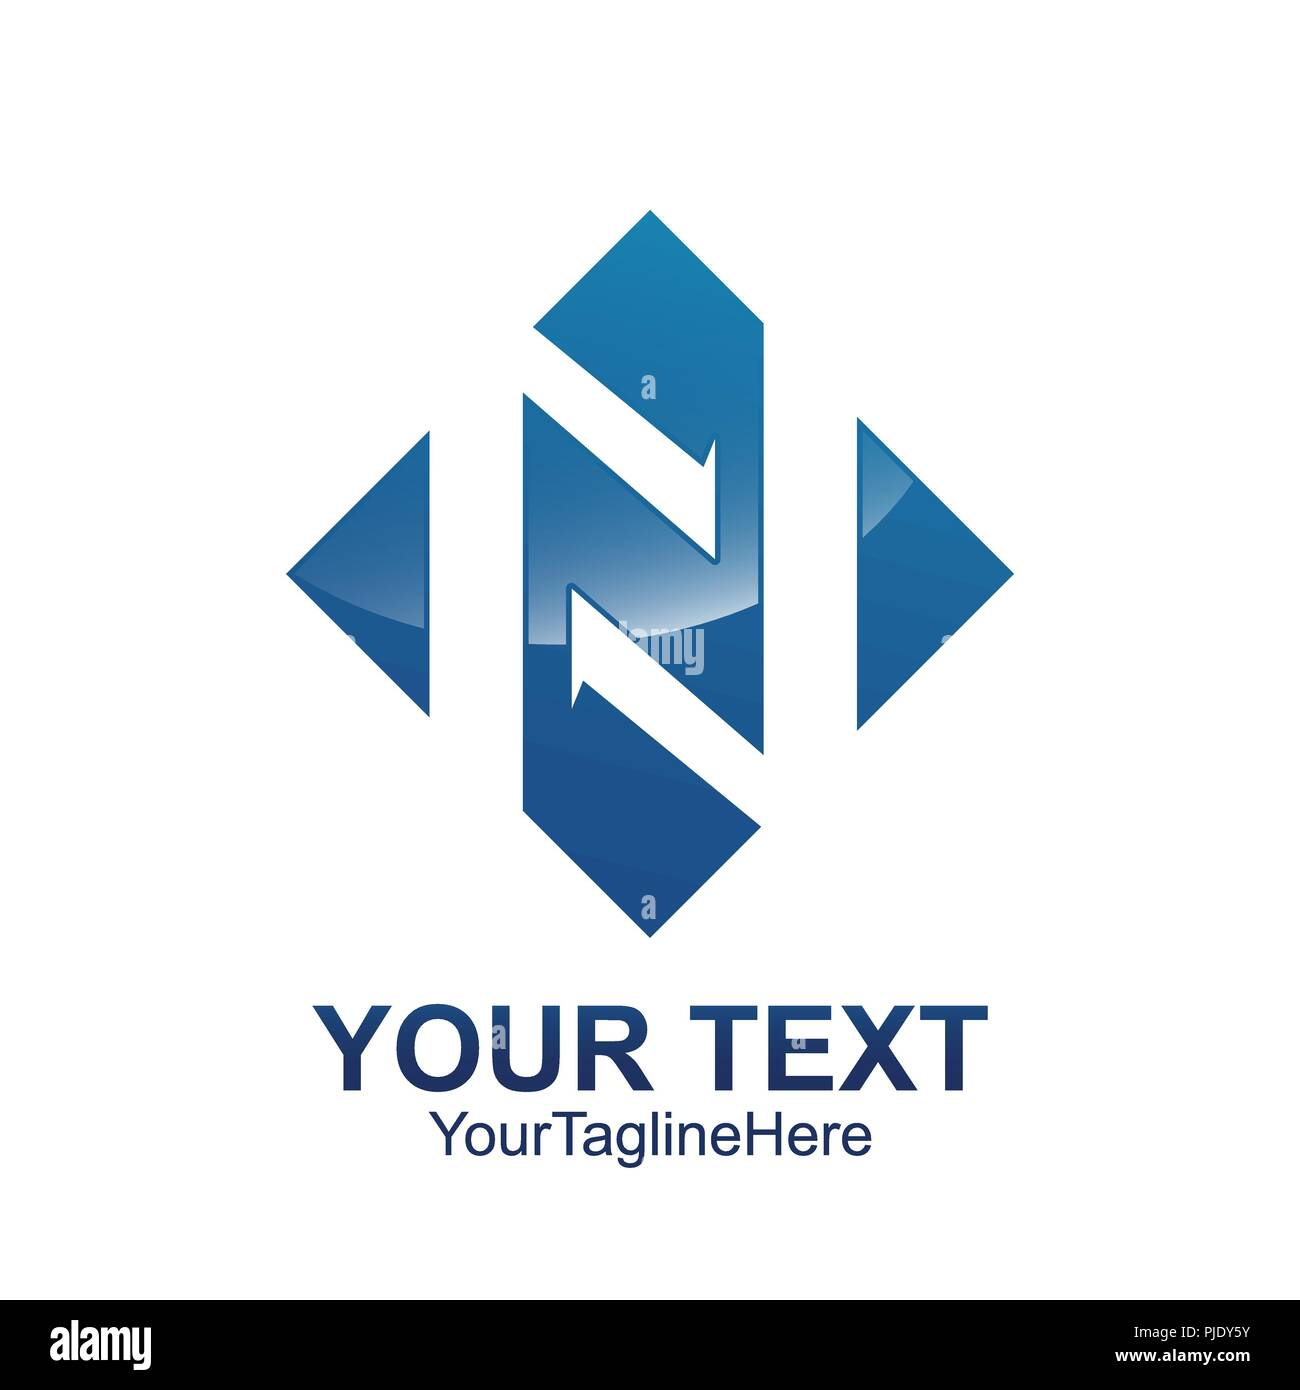 initial letter n logo template colored blue square arrow design for business and company identity